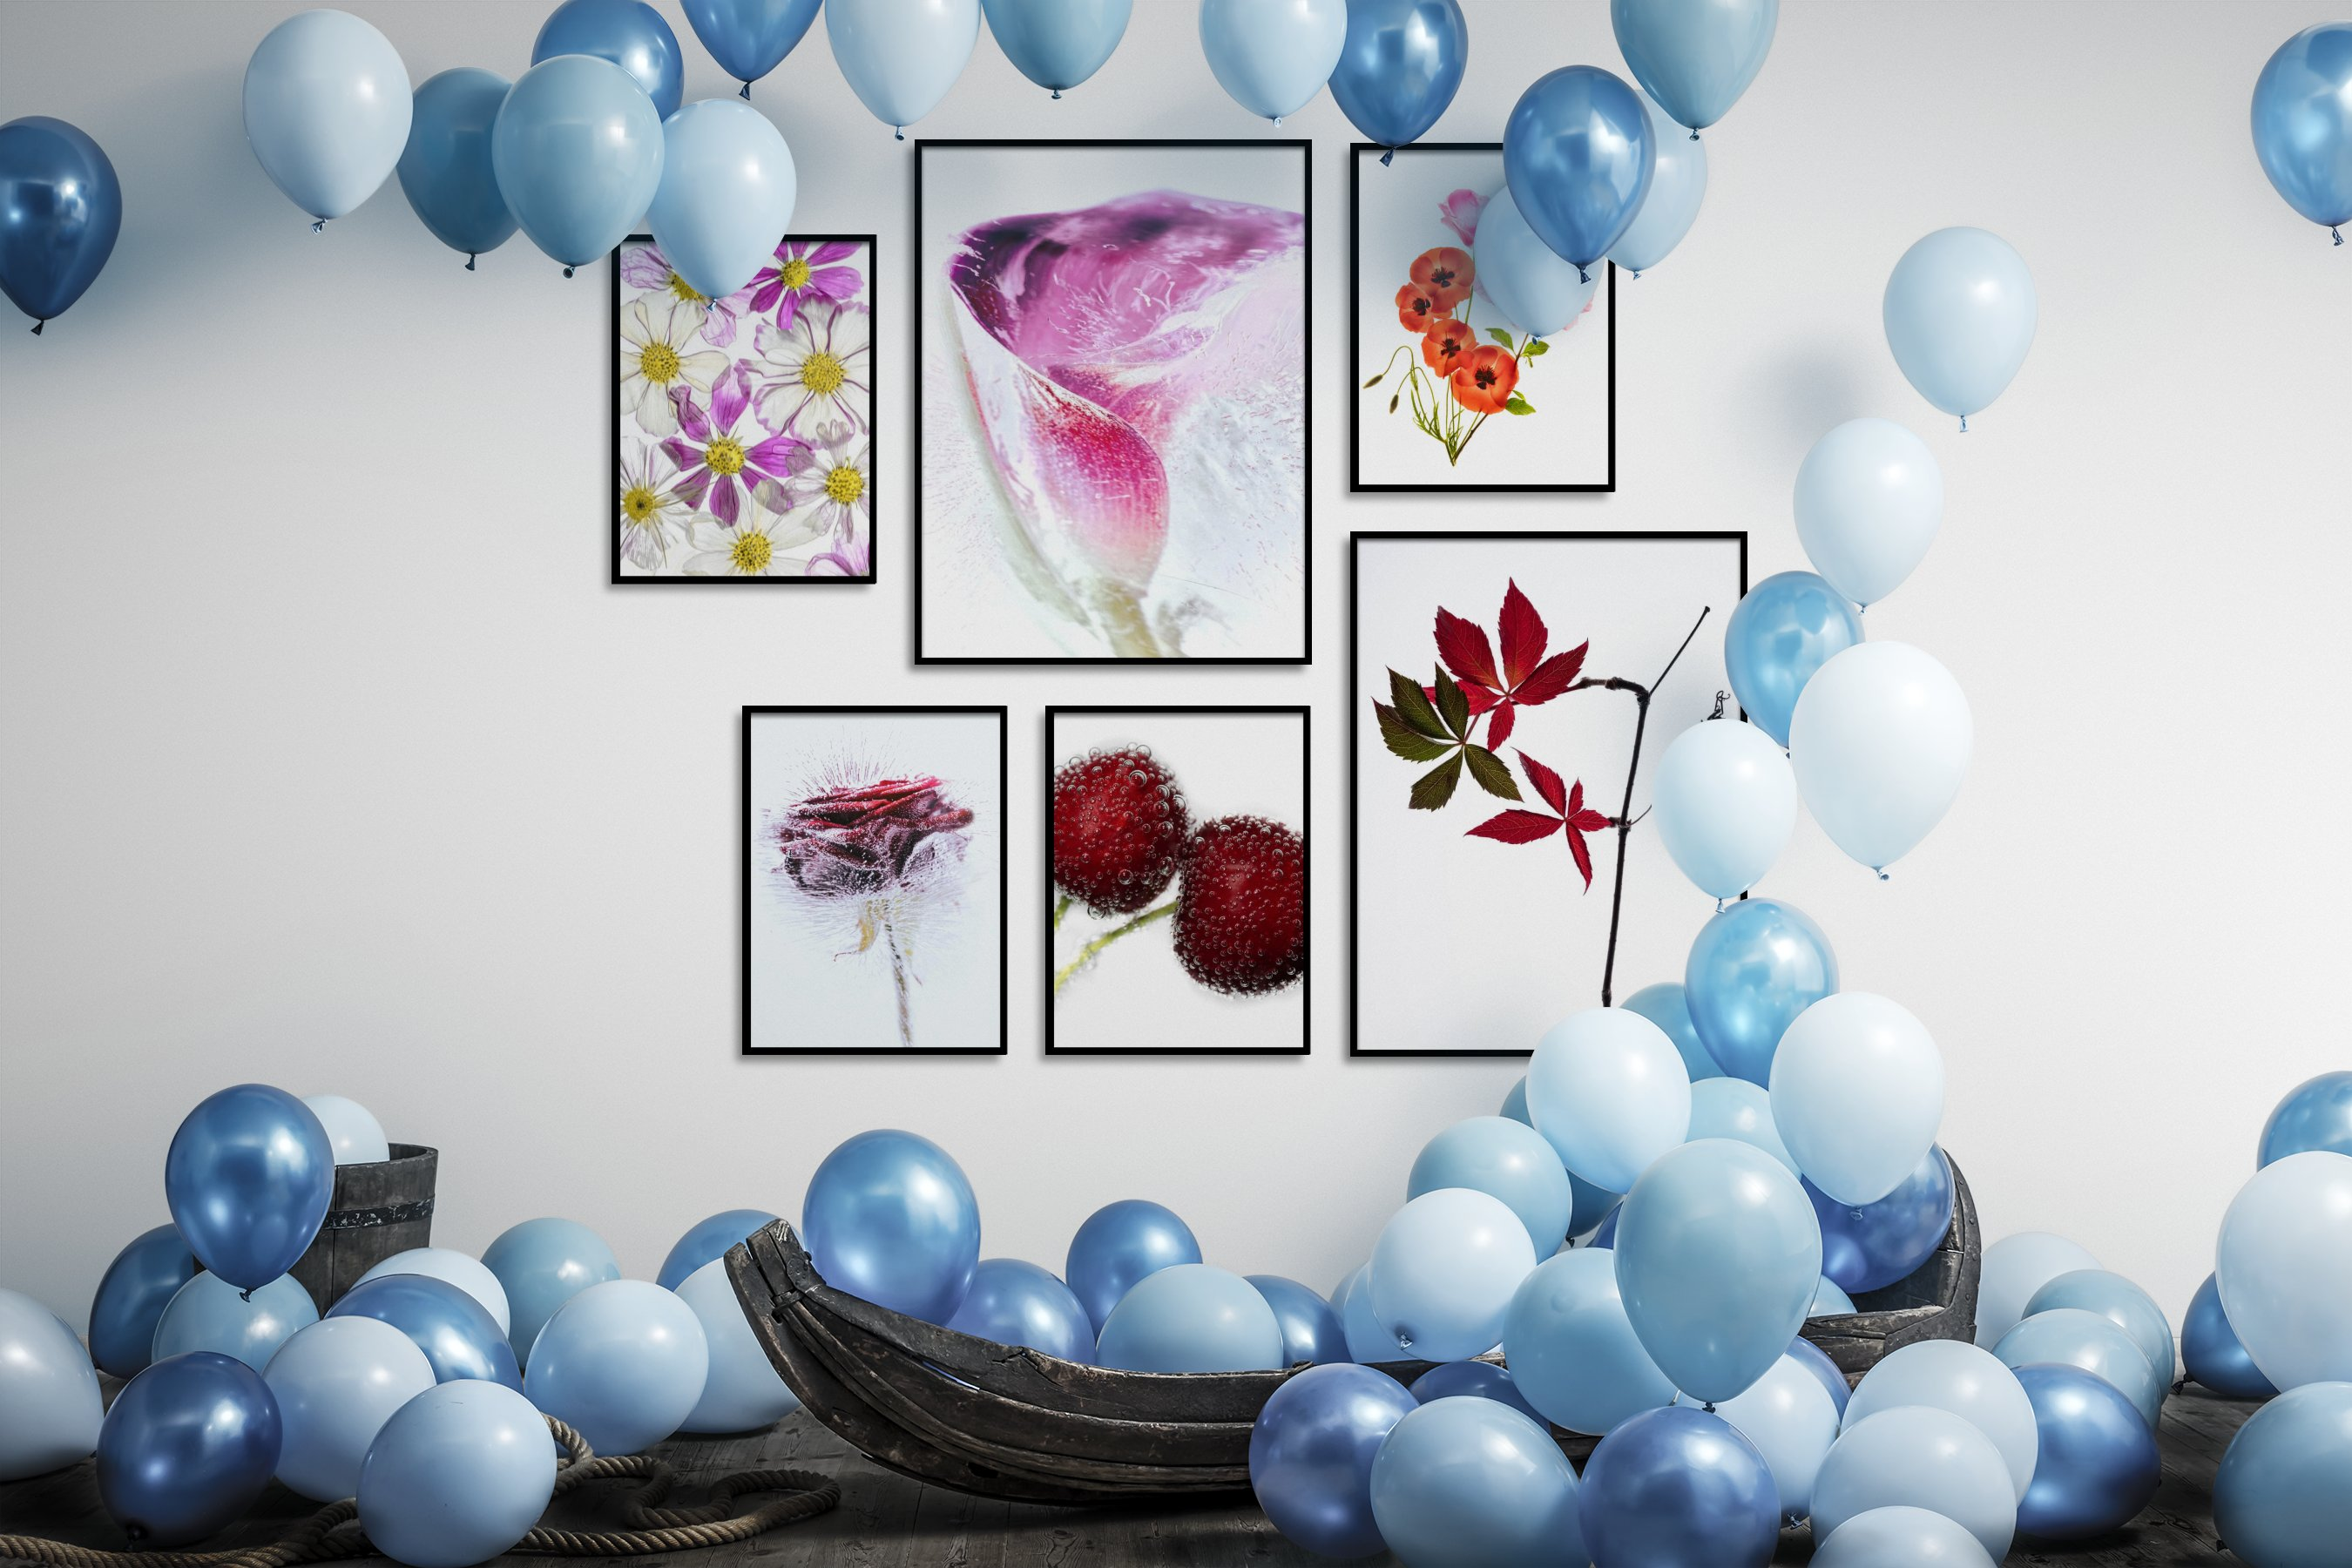 Gallery wall idea with six framed pictures arranged on a wall depicting Colorful, For the Moderate, Flowers & Plants, Bright Tones, and For the Minimalist